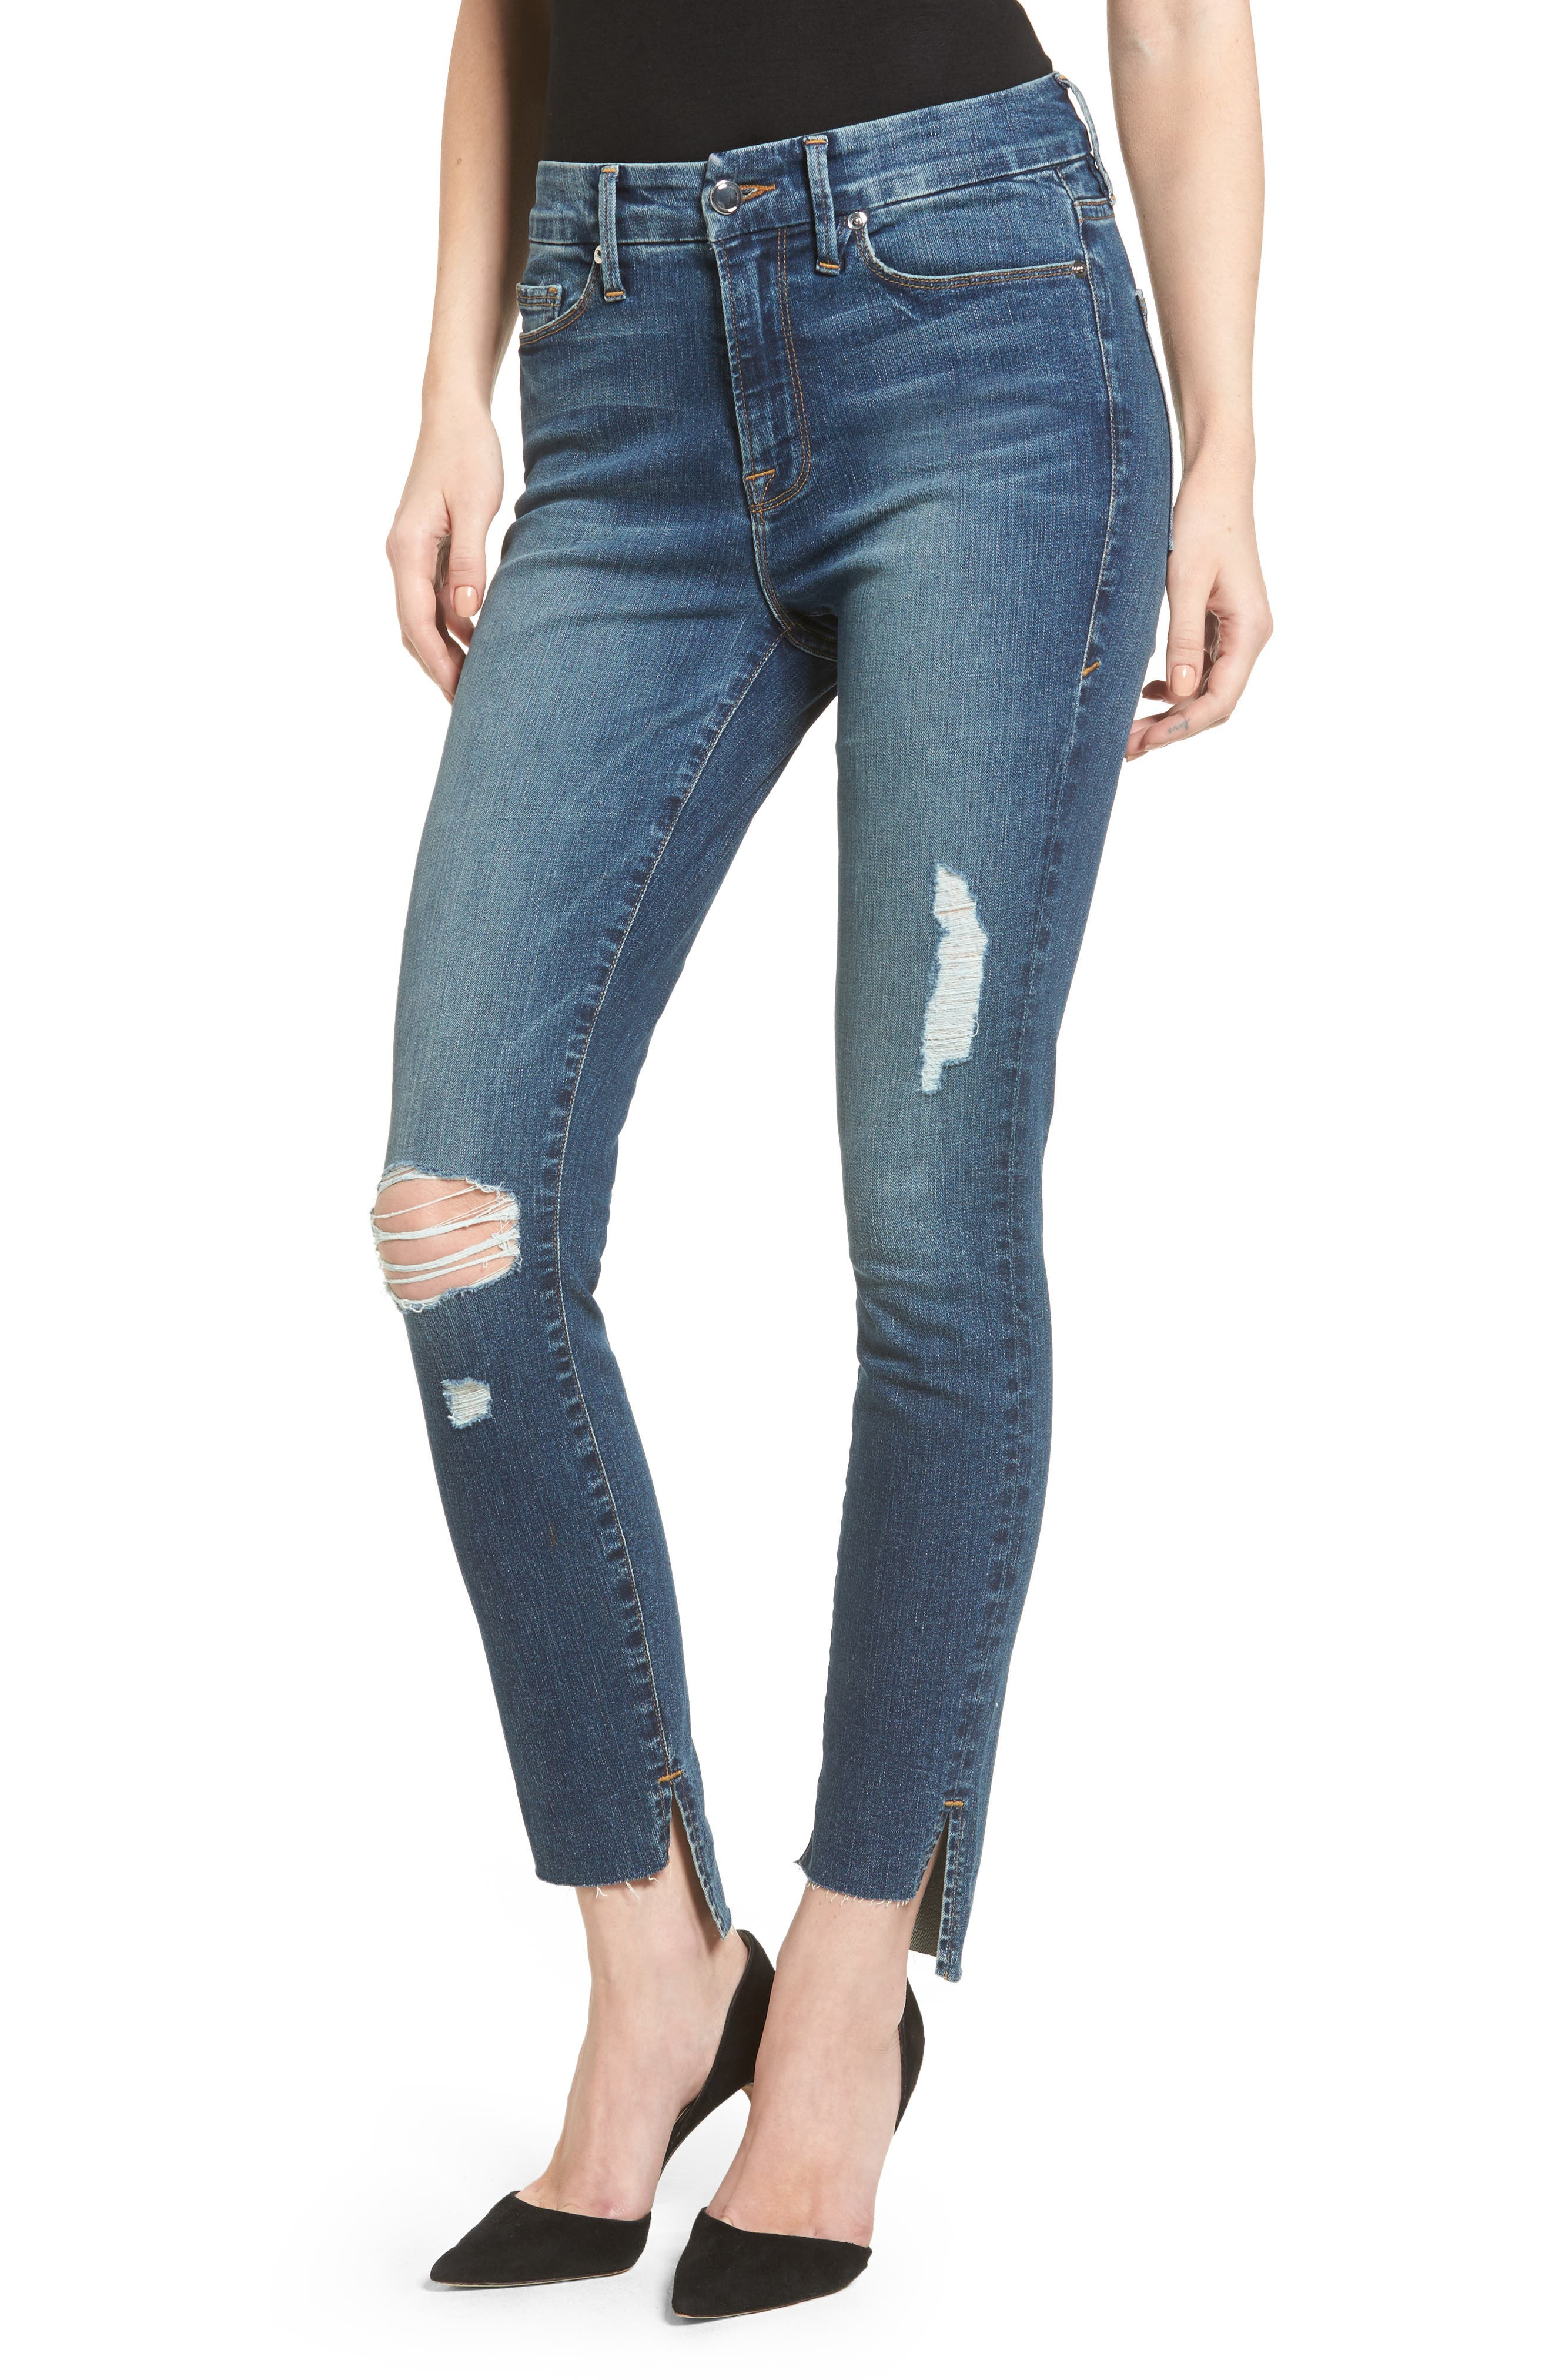 Main Image - Good American Good Waist Stagger Hem Jeans (Blue 074) (Extended Sizes)